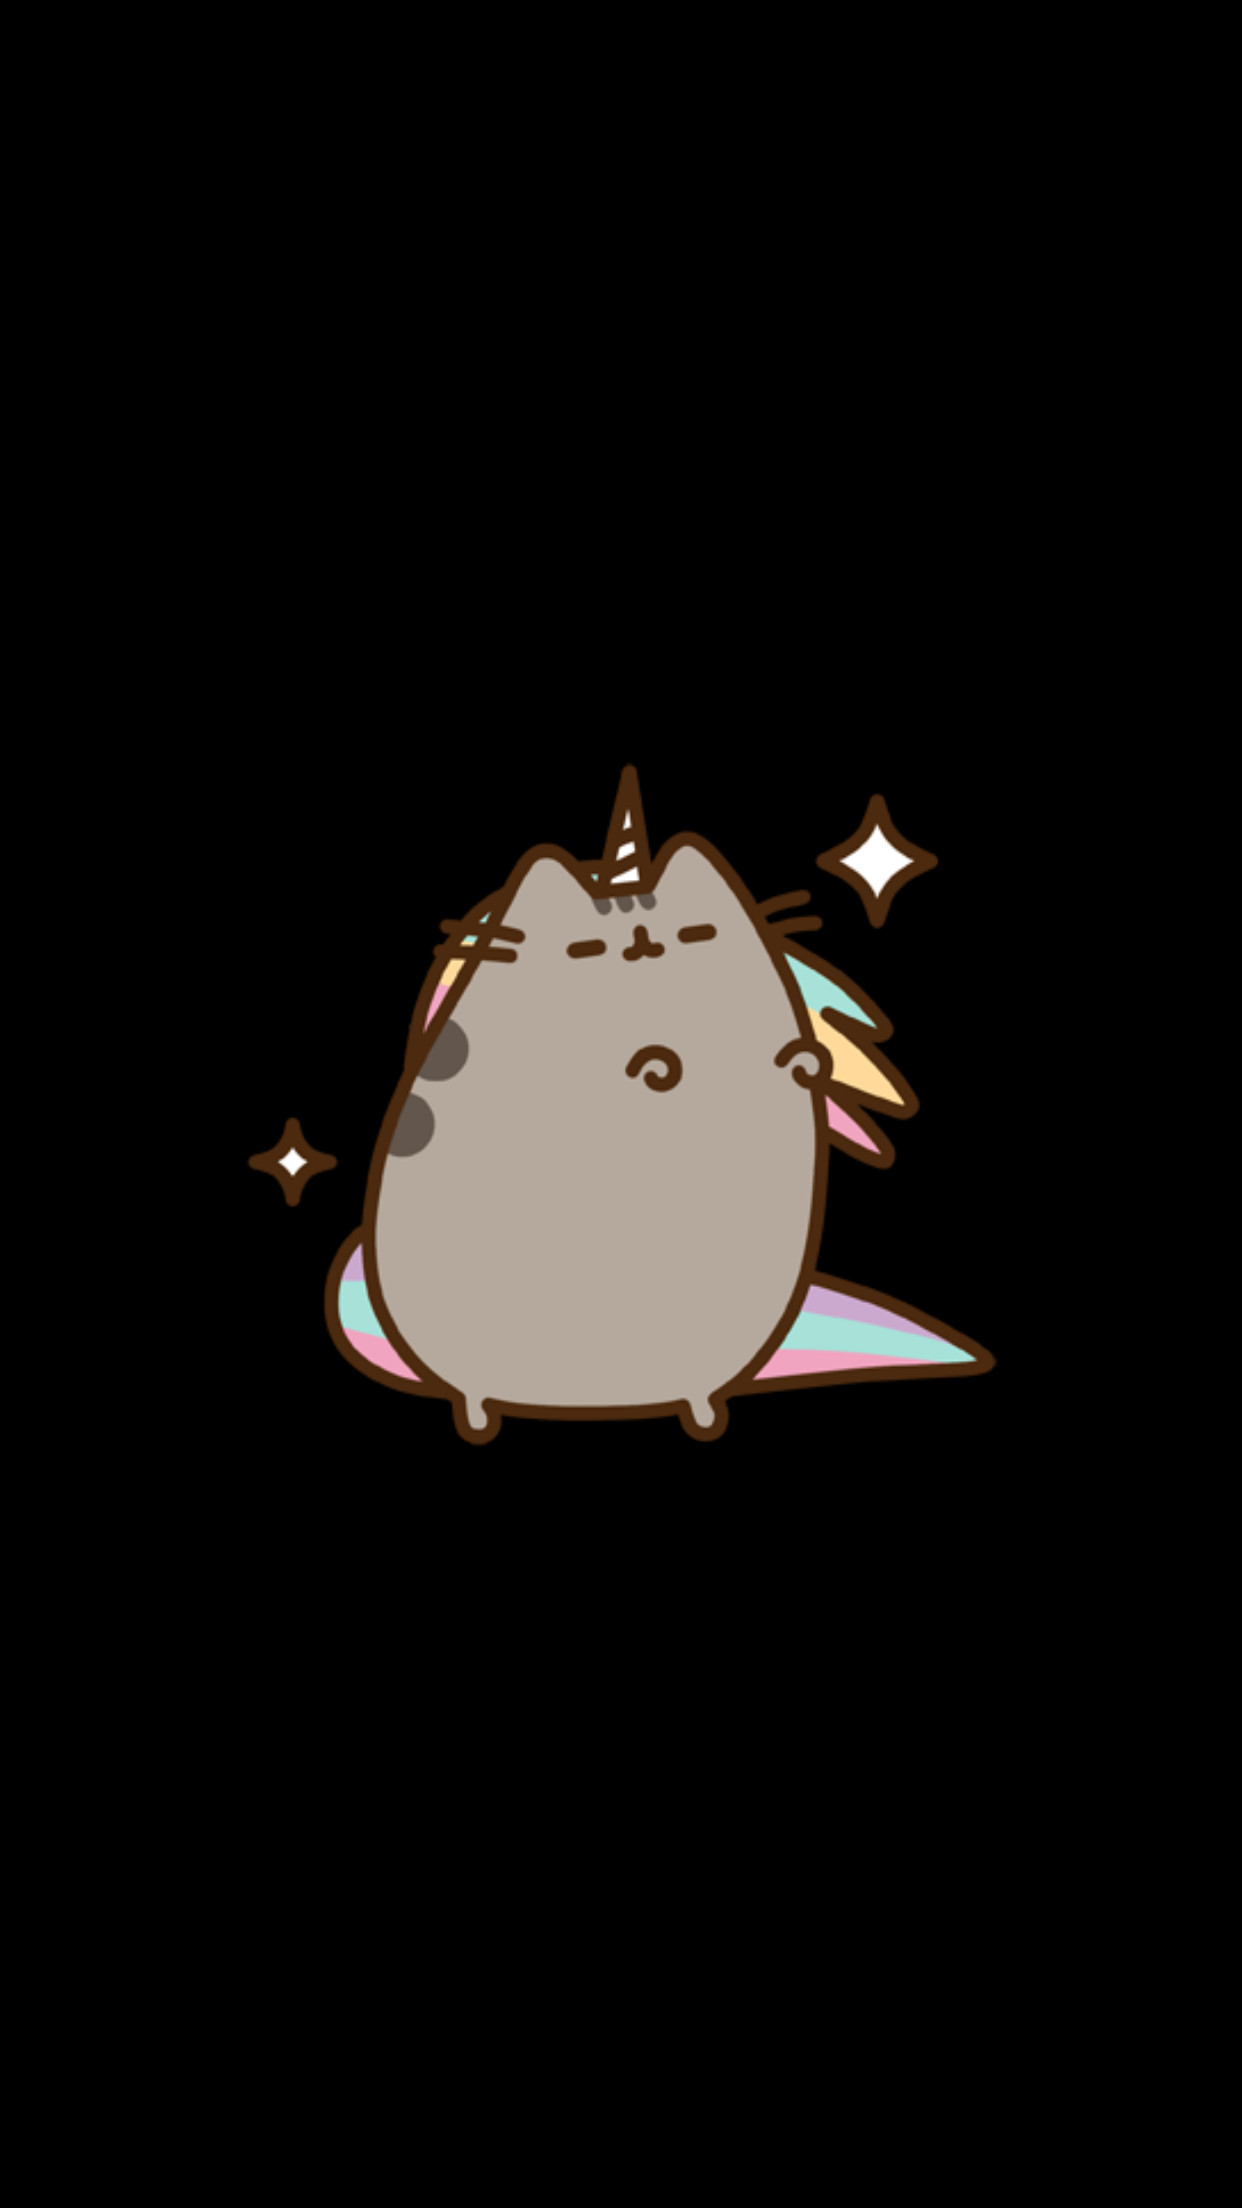 Pusheen The Cat Funny